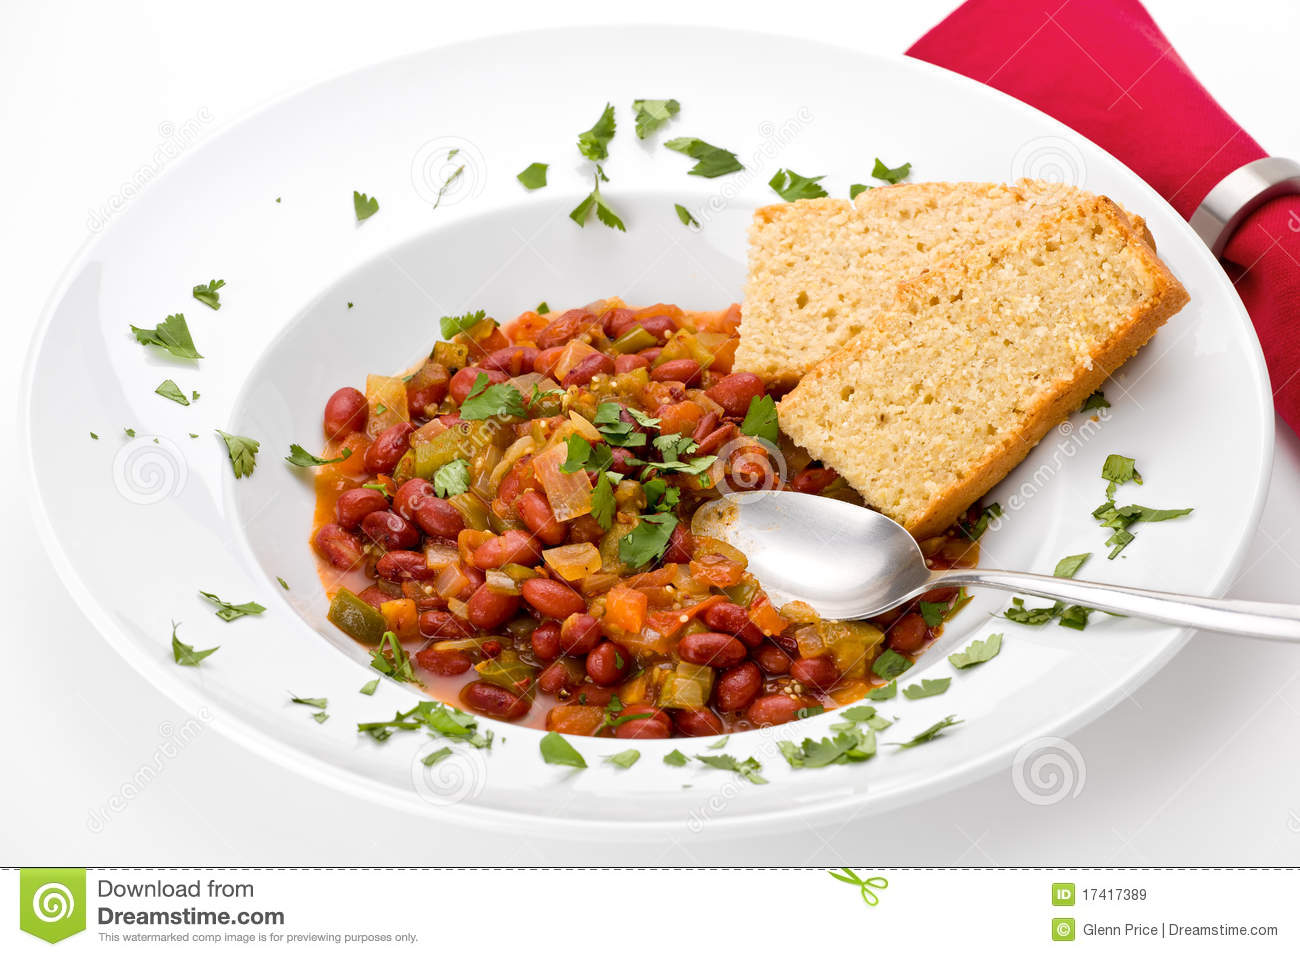 Chili With Cornbread Royalty Free Stock Images   Image  17417389